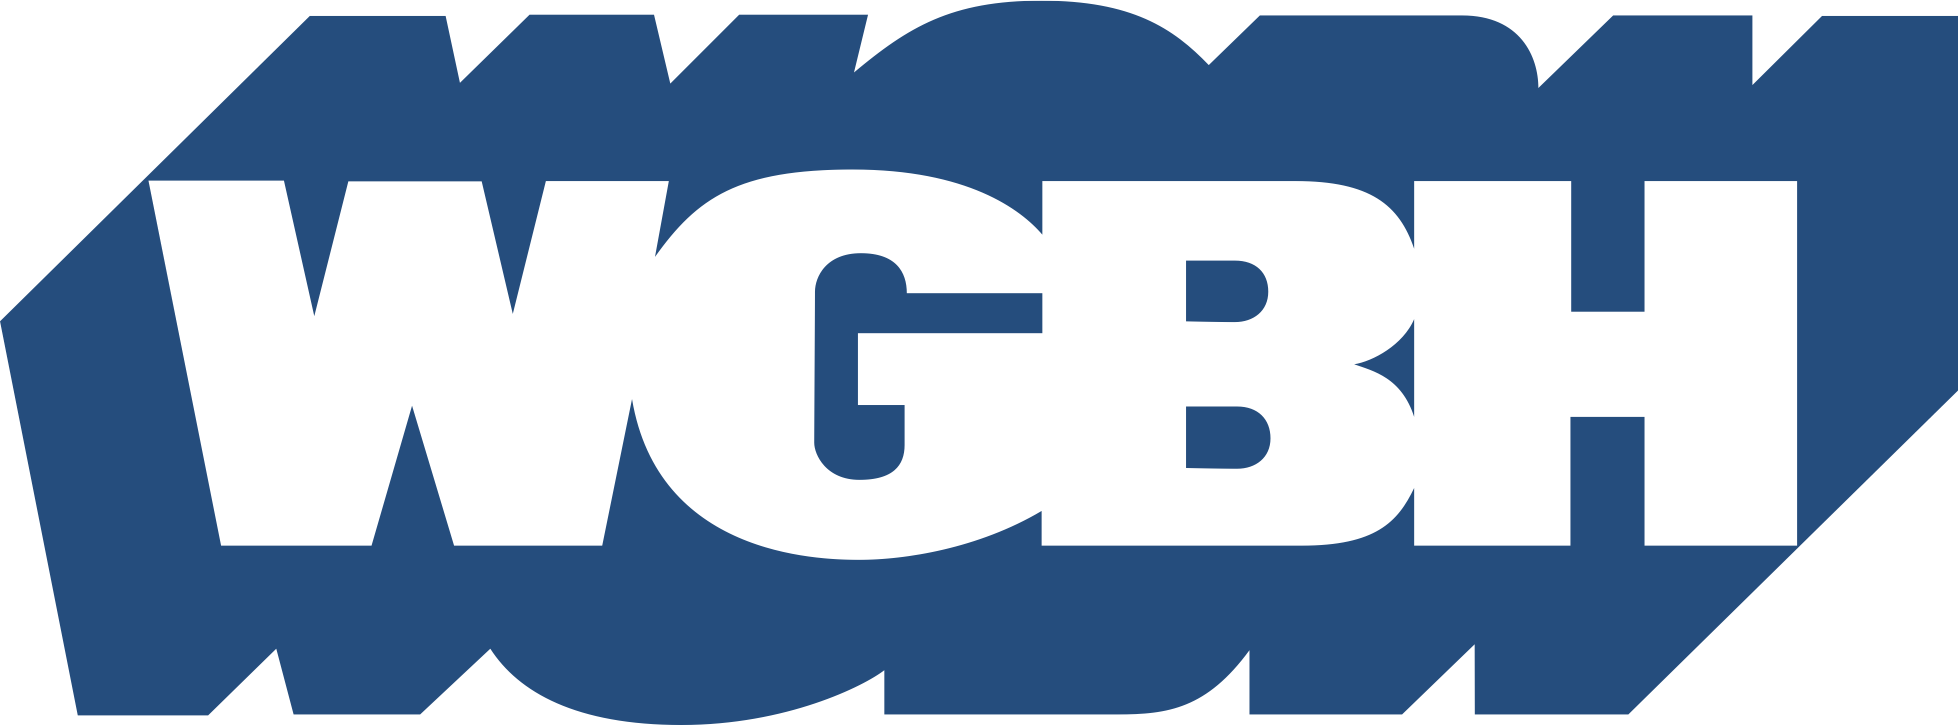 WGBH_647_blue.png